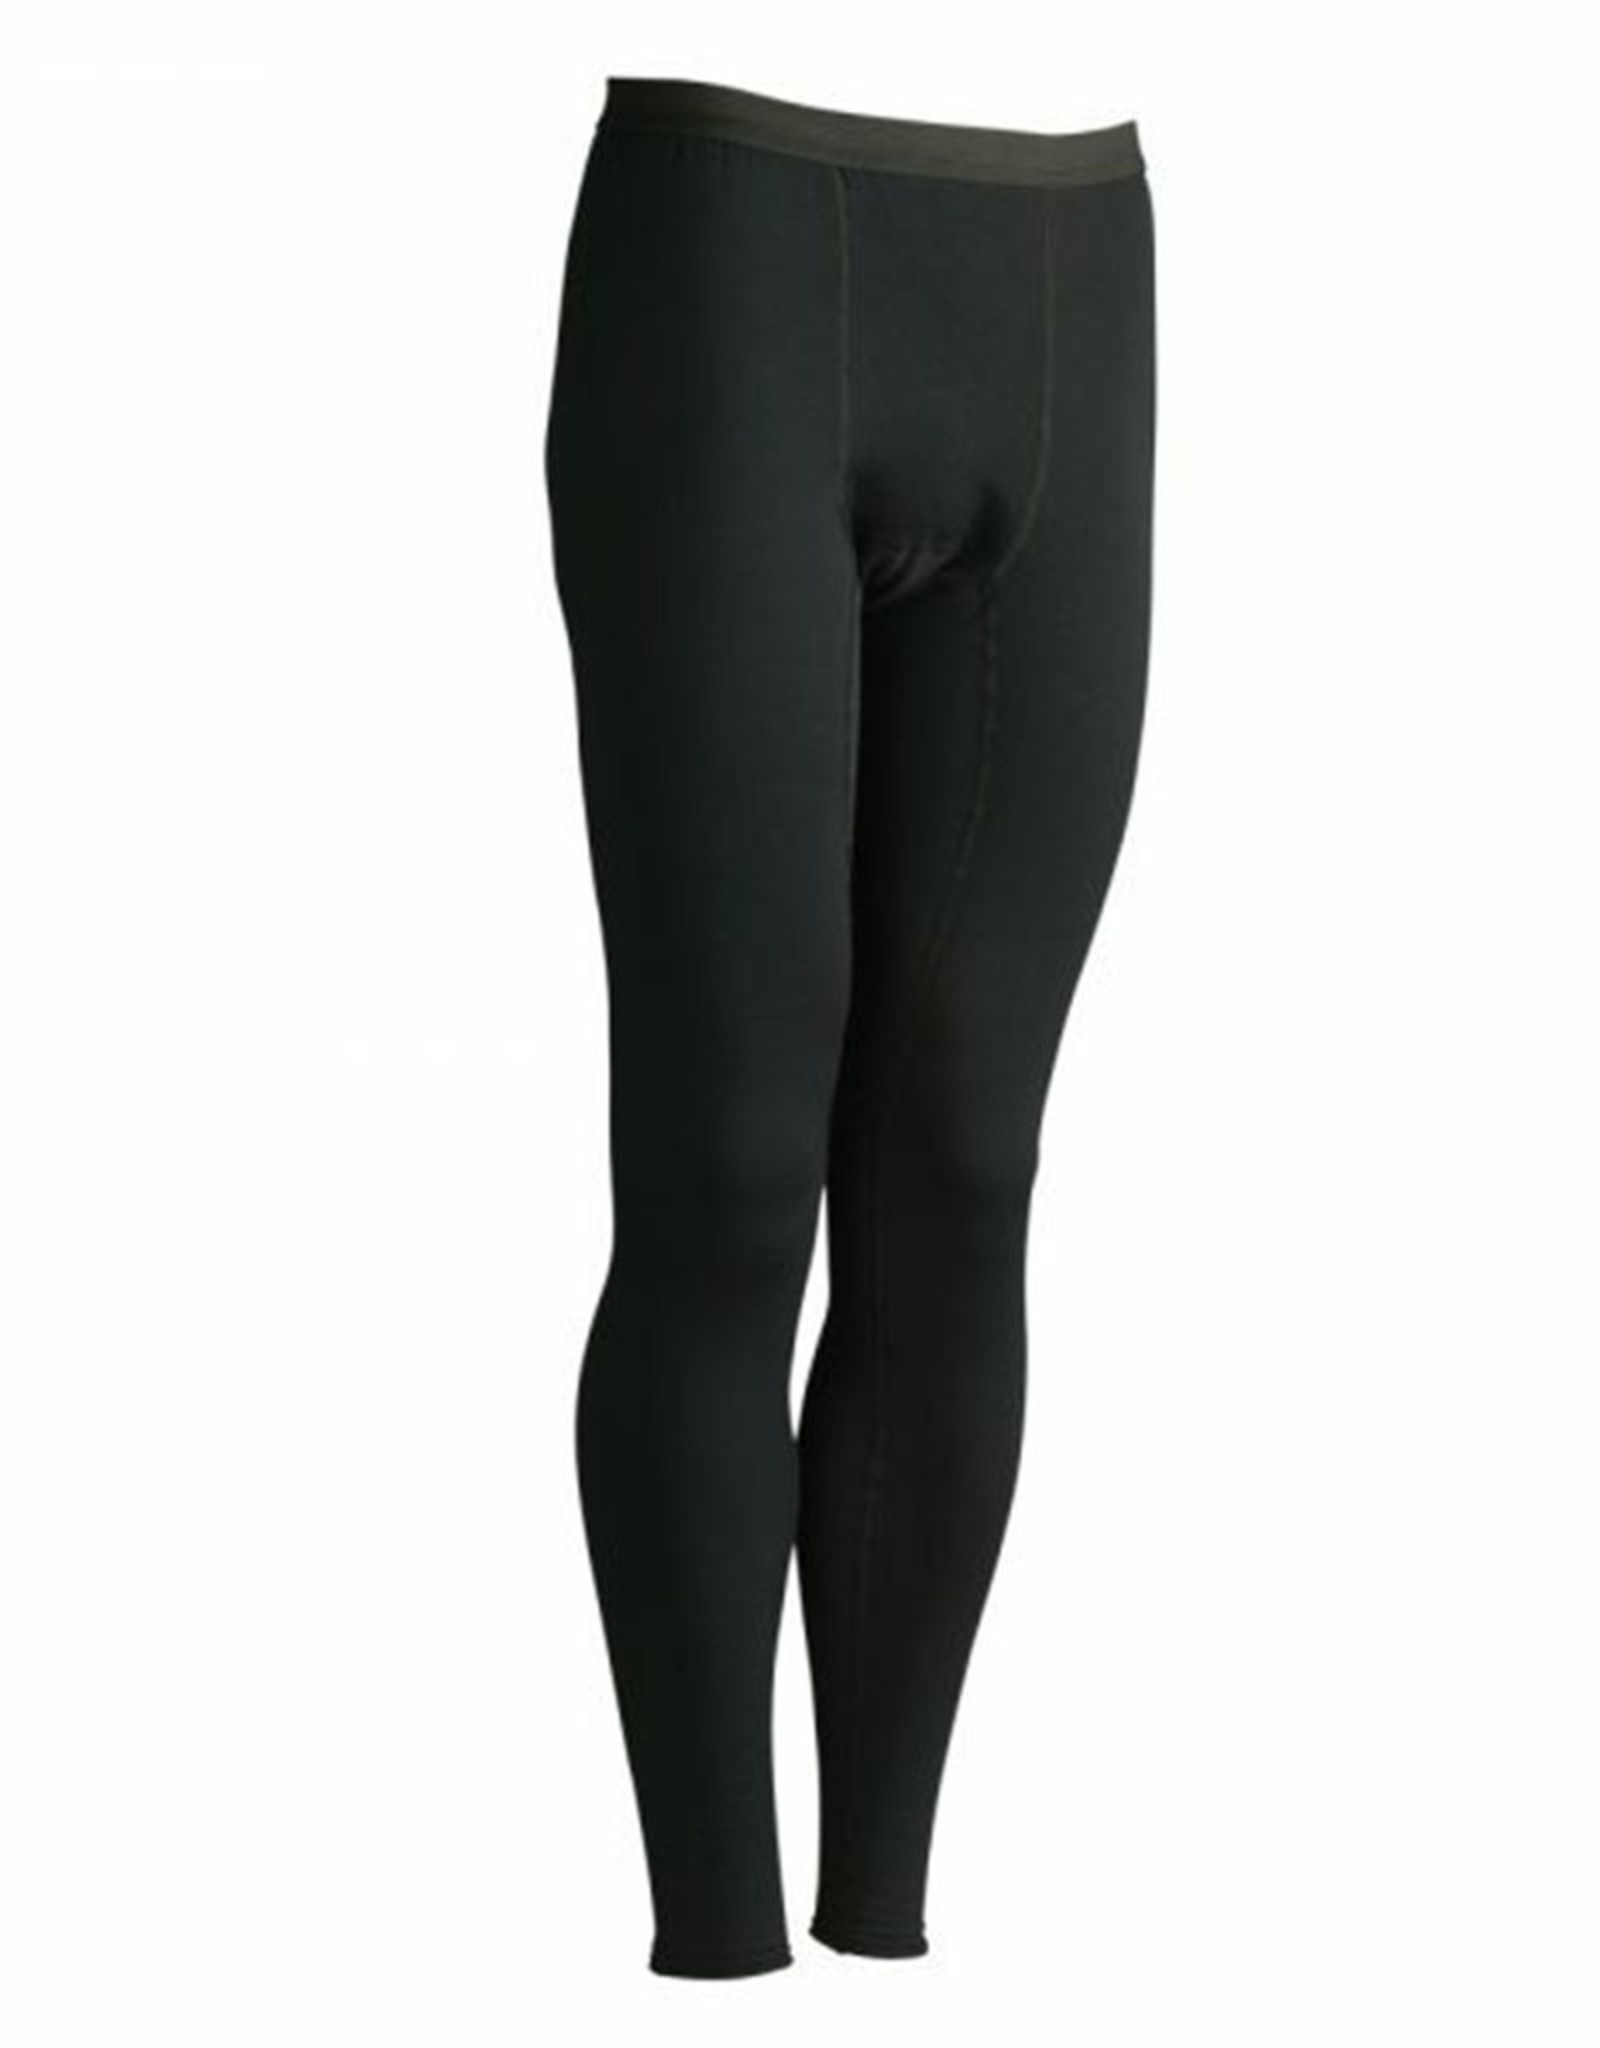 Immersion Research IR Thick Skin Pant - Men